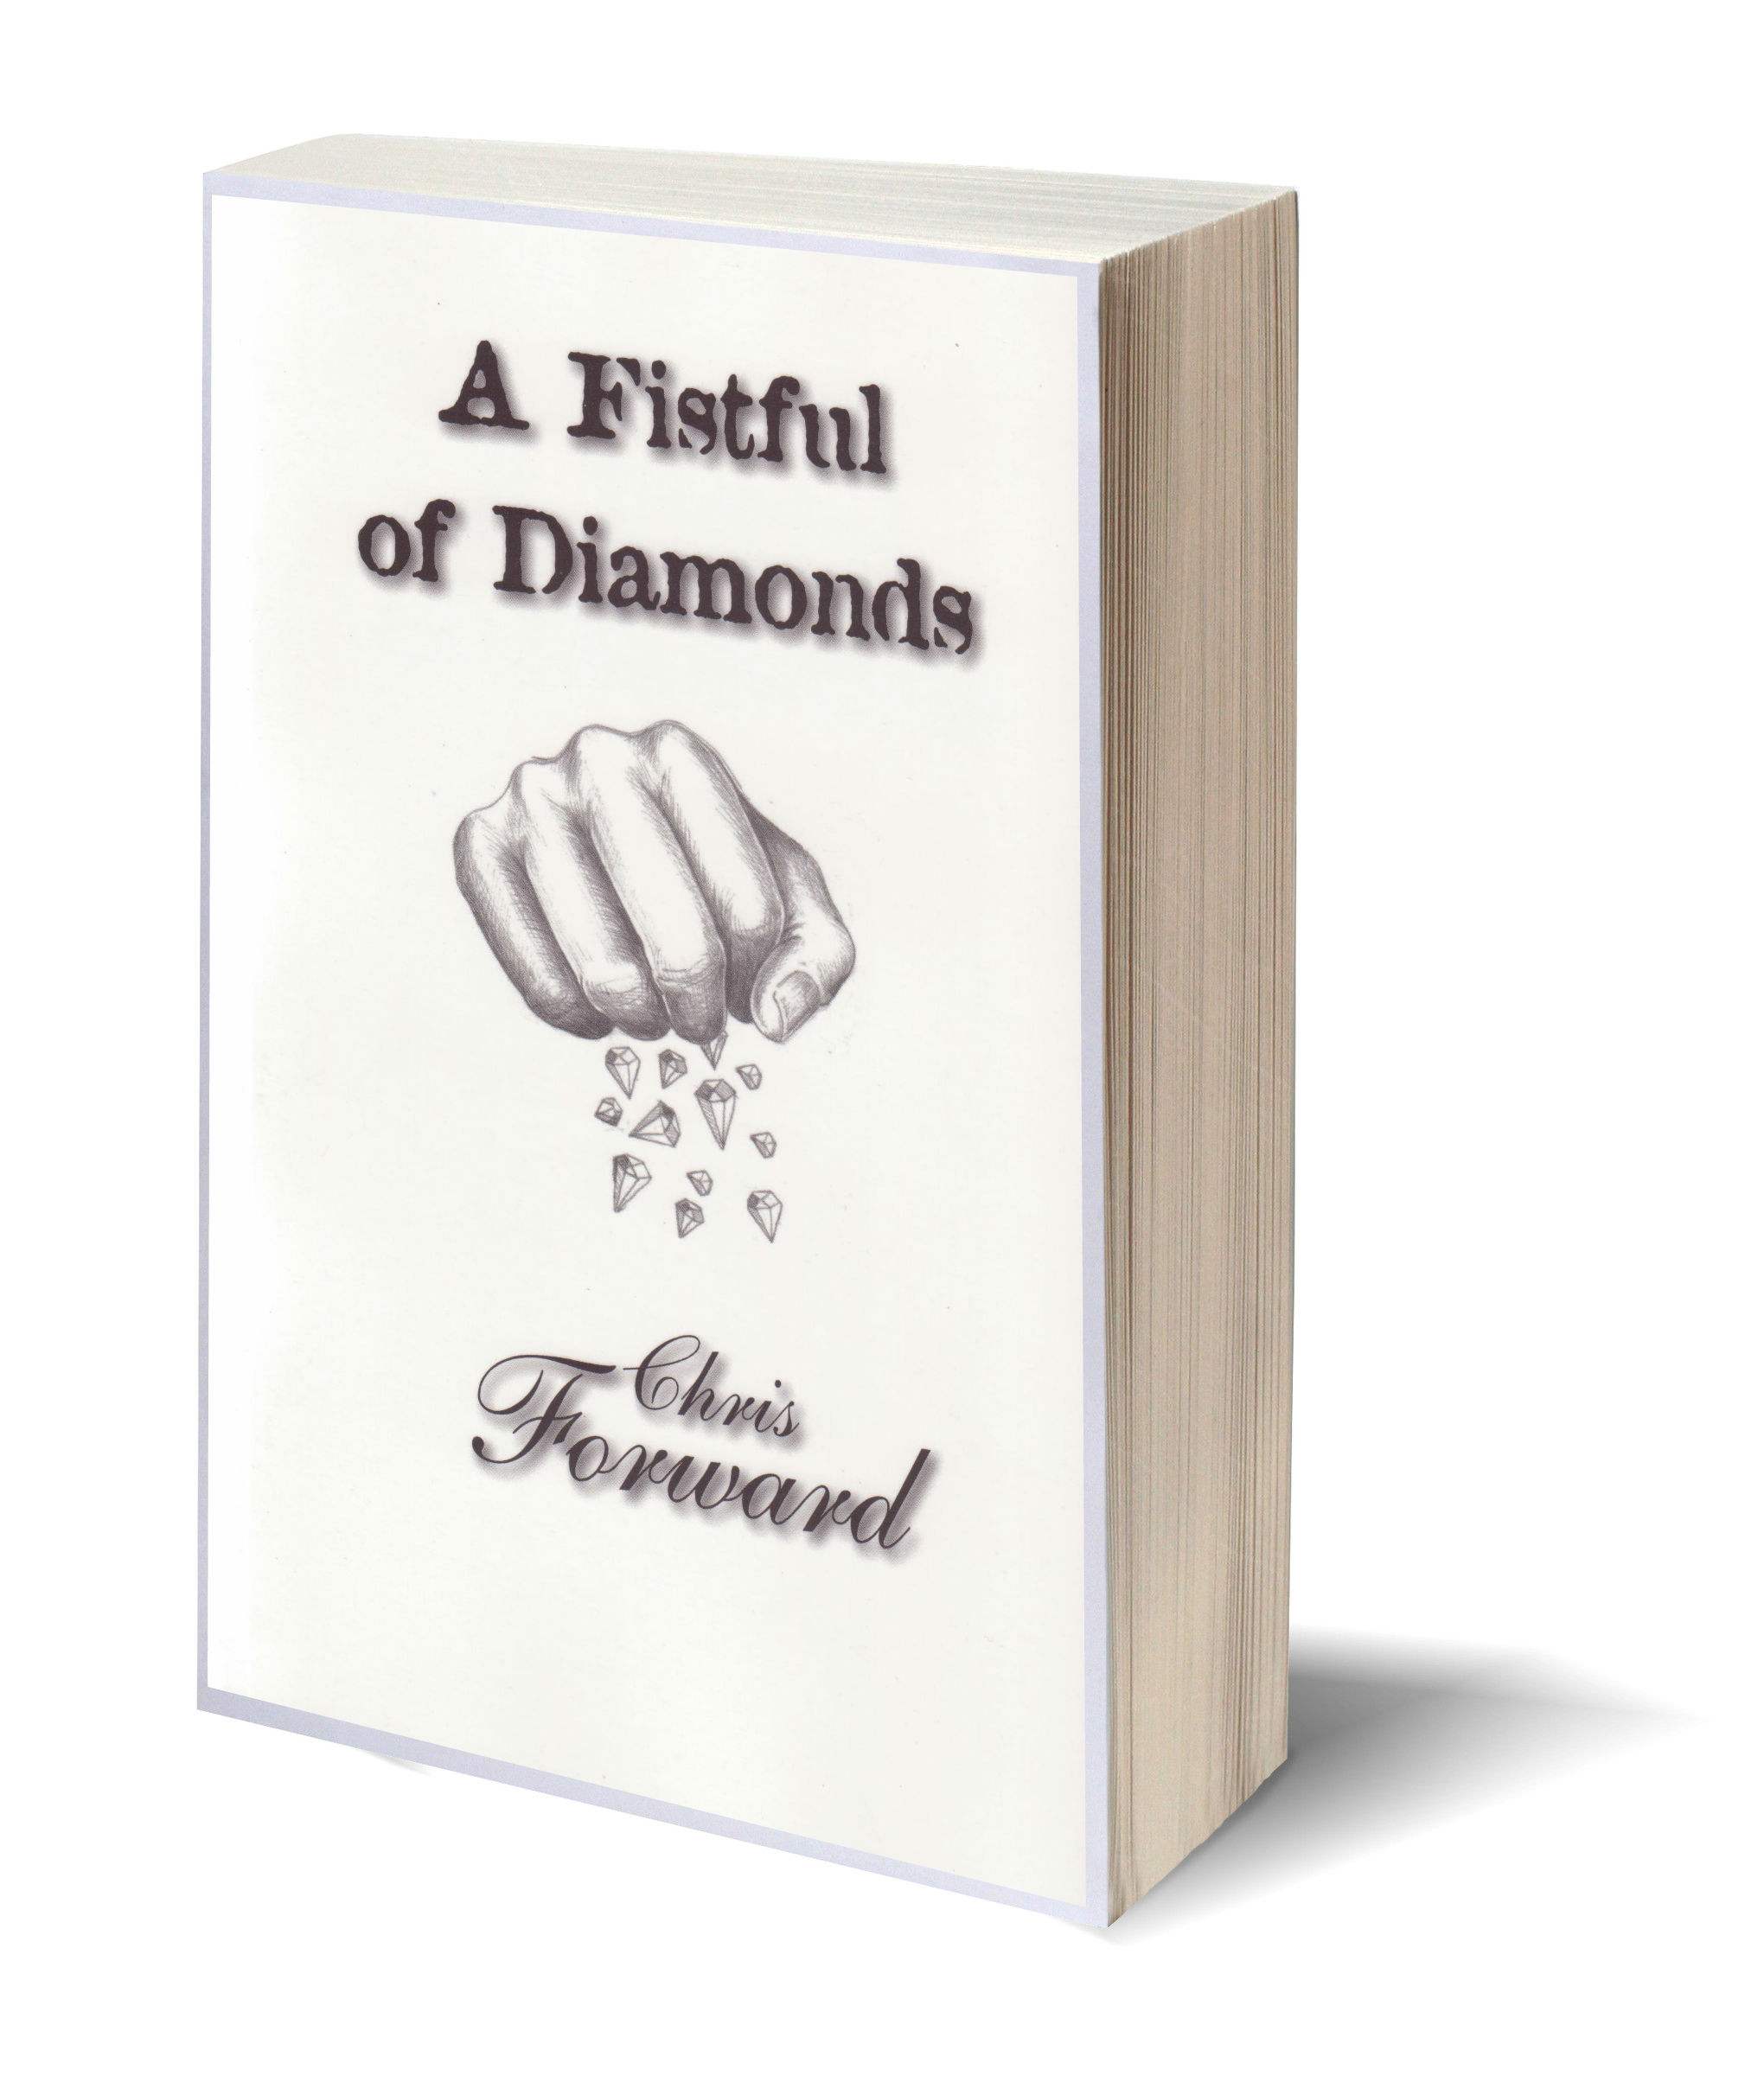 A Fistful of Diamonds 3D-Book-Template.jpg